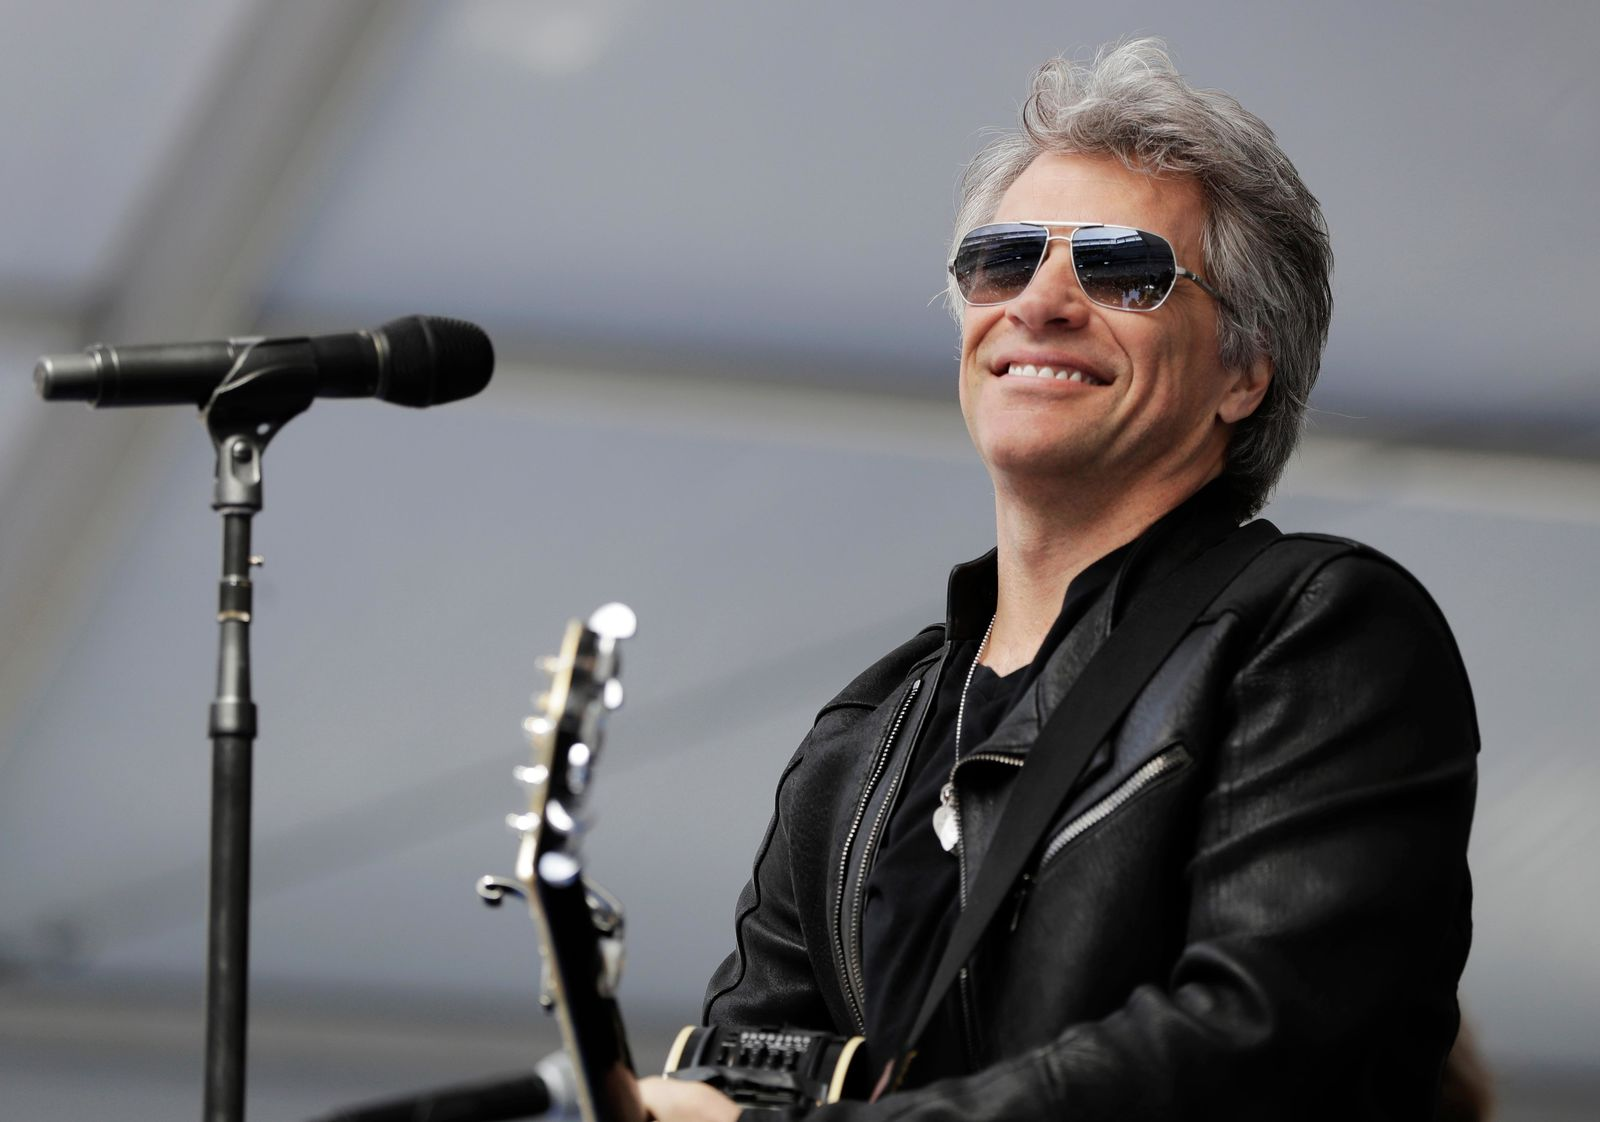 FILE - In this May 16, 2017 file photo, musician Jon Bon Jovi performs during a surprise appearance at the Fairleigh Dickinson University commencement ceremony at MetLife Stadium in East Rutherford, N.J. (AP Photo/Julio Cortez, File)